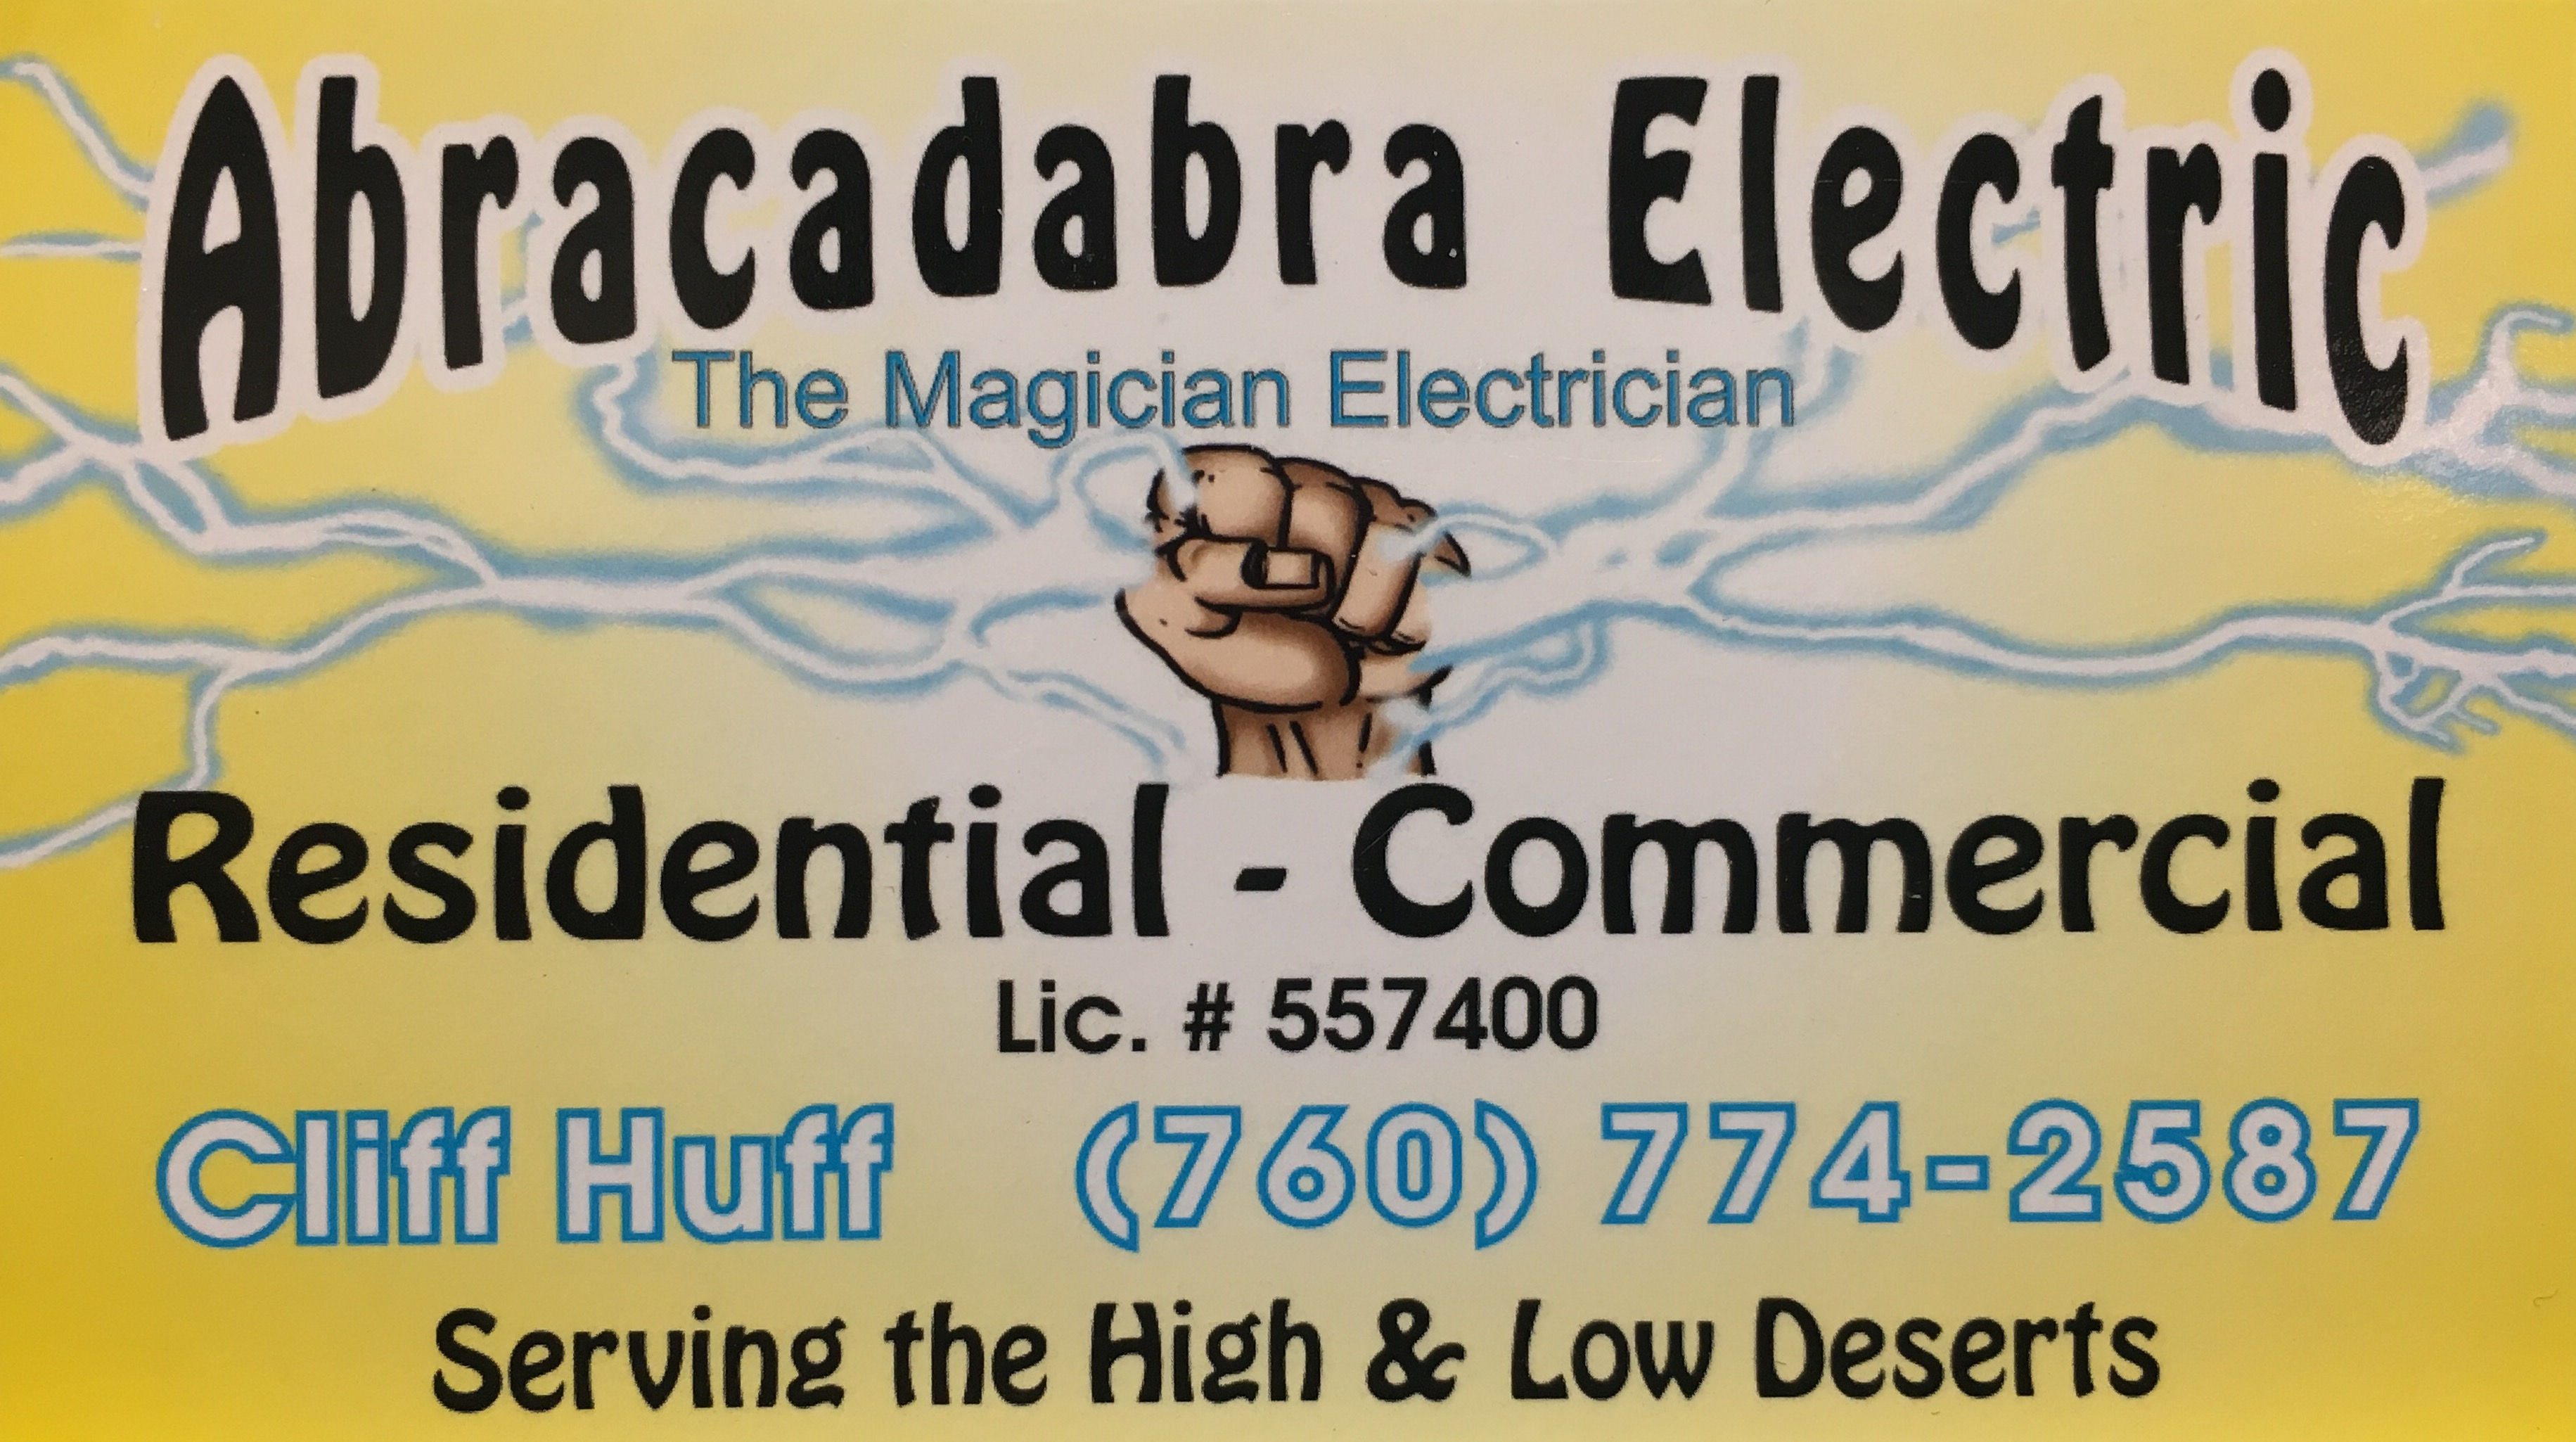 Abracadabra Electric